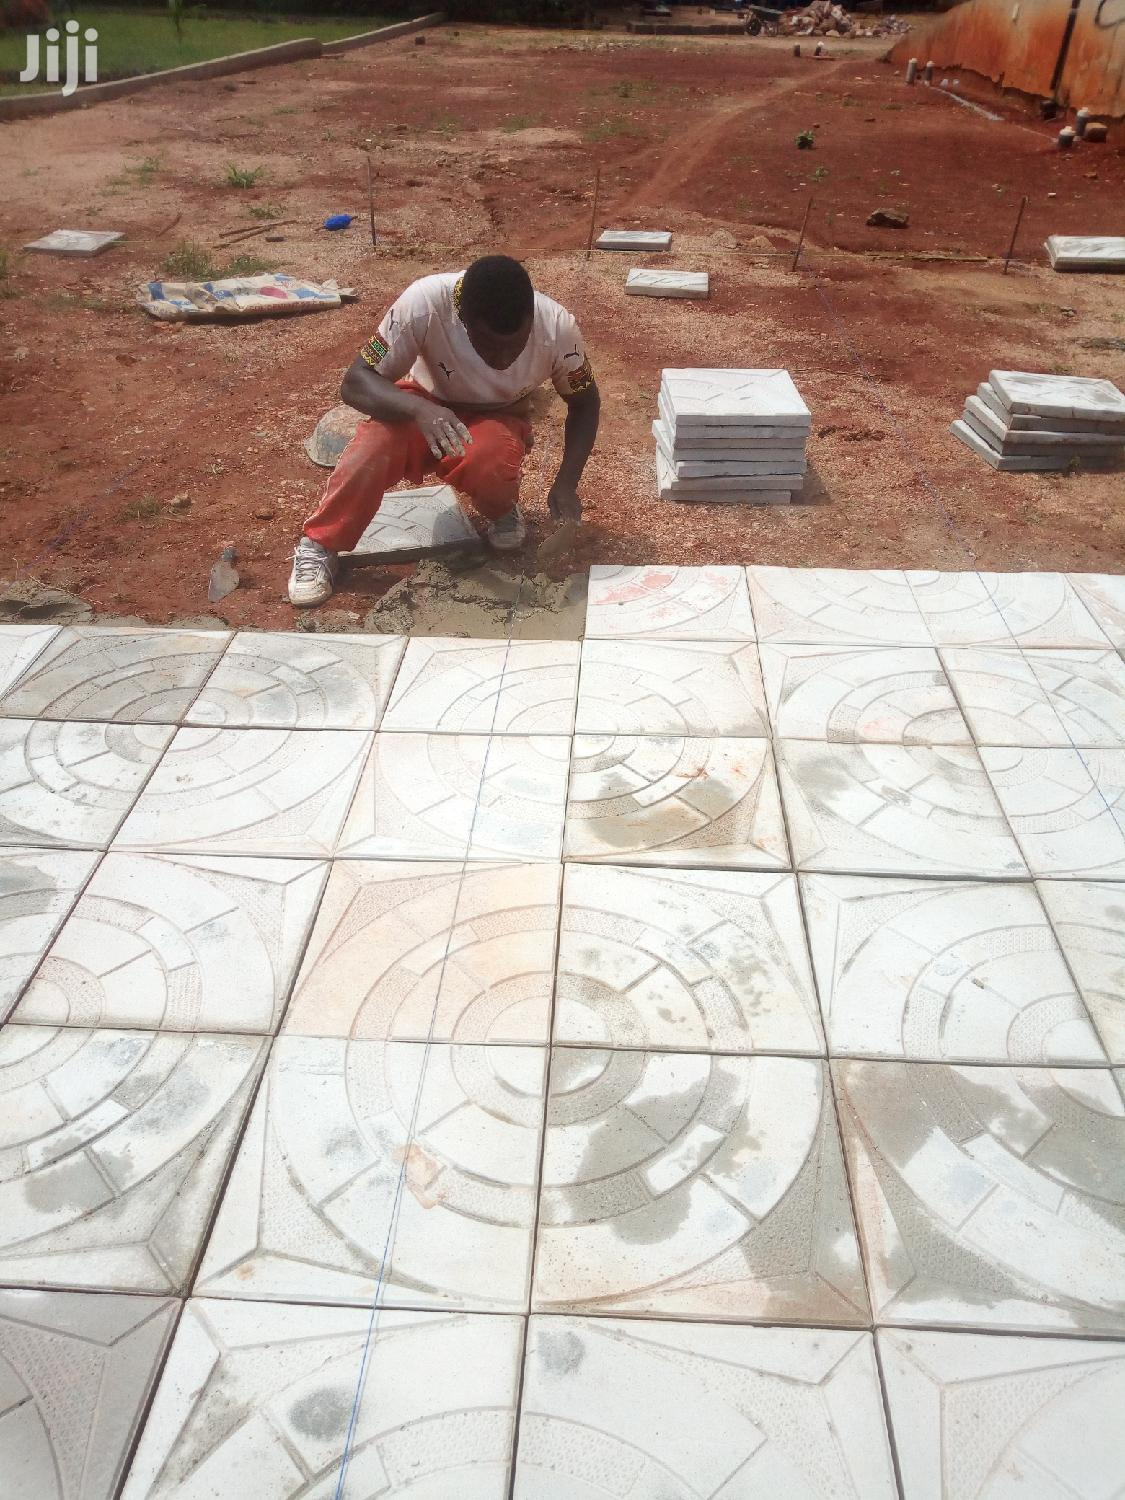 Leemyke Interior And Exterior Designs | Building Materials for sale in Mfantsiman Municipal, Central Region, Ghana